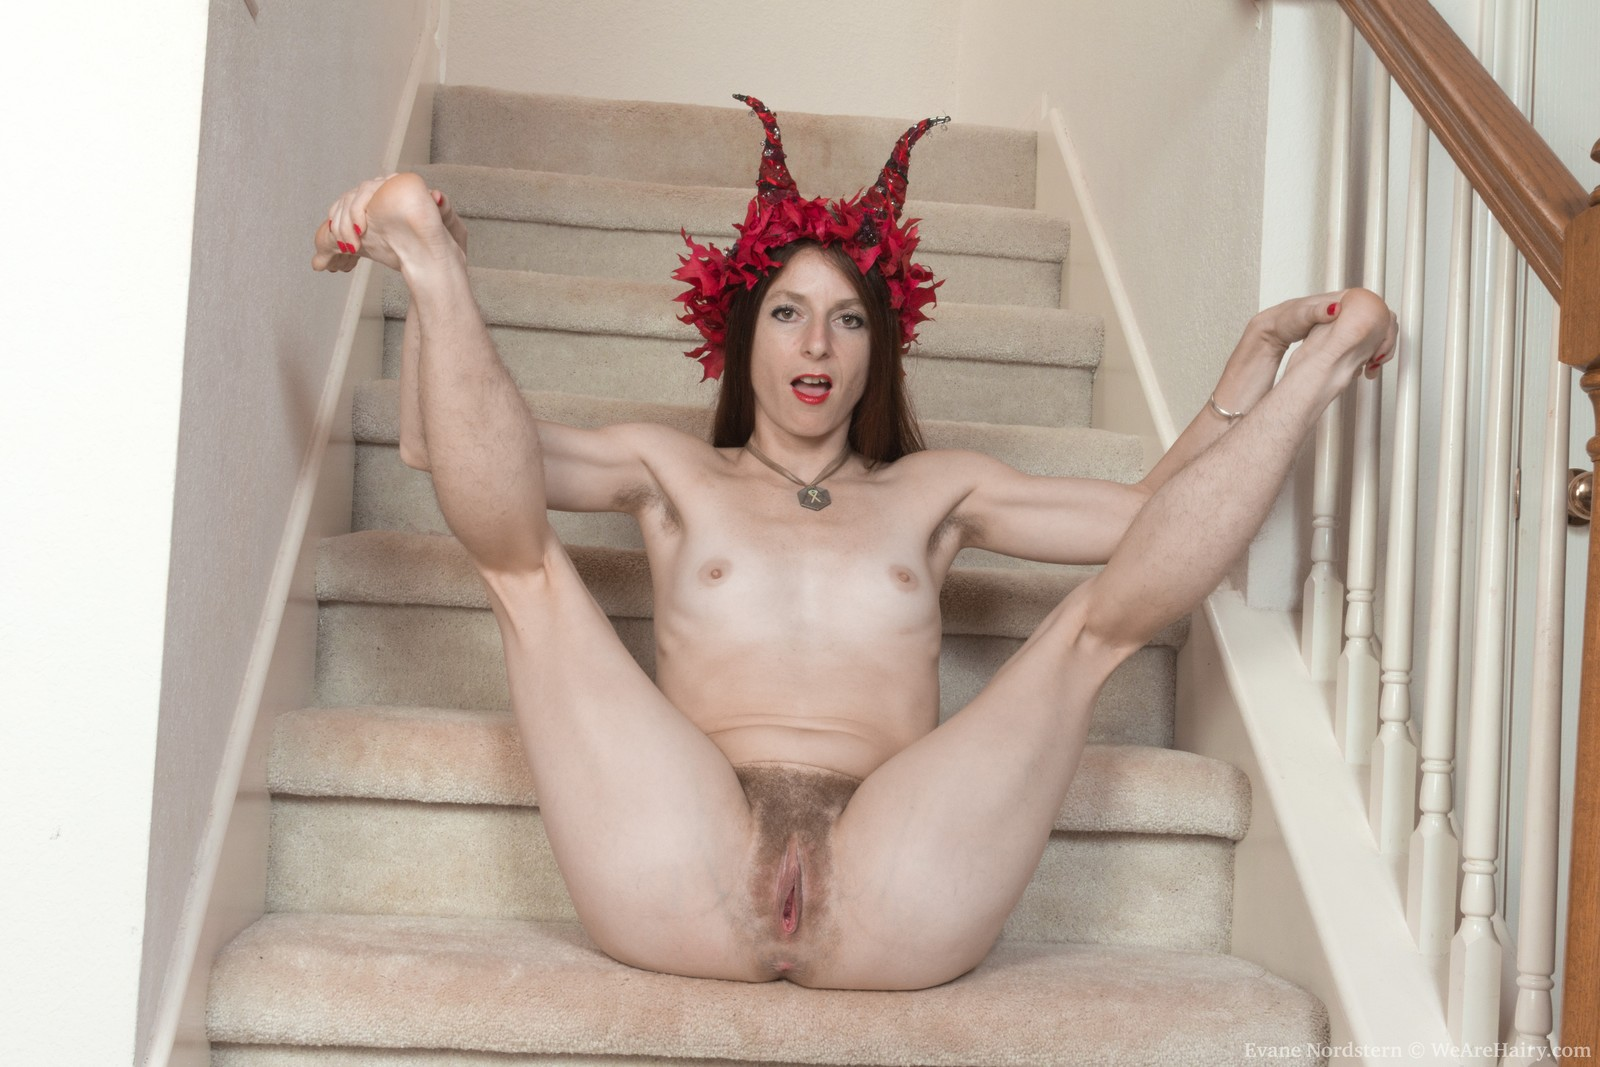 evane-nordstern-strips-naked-on-her-staircase14.jpg